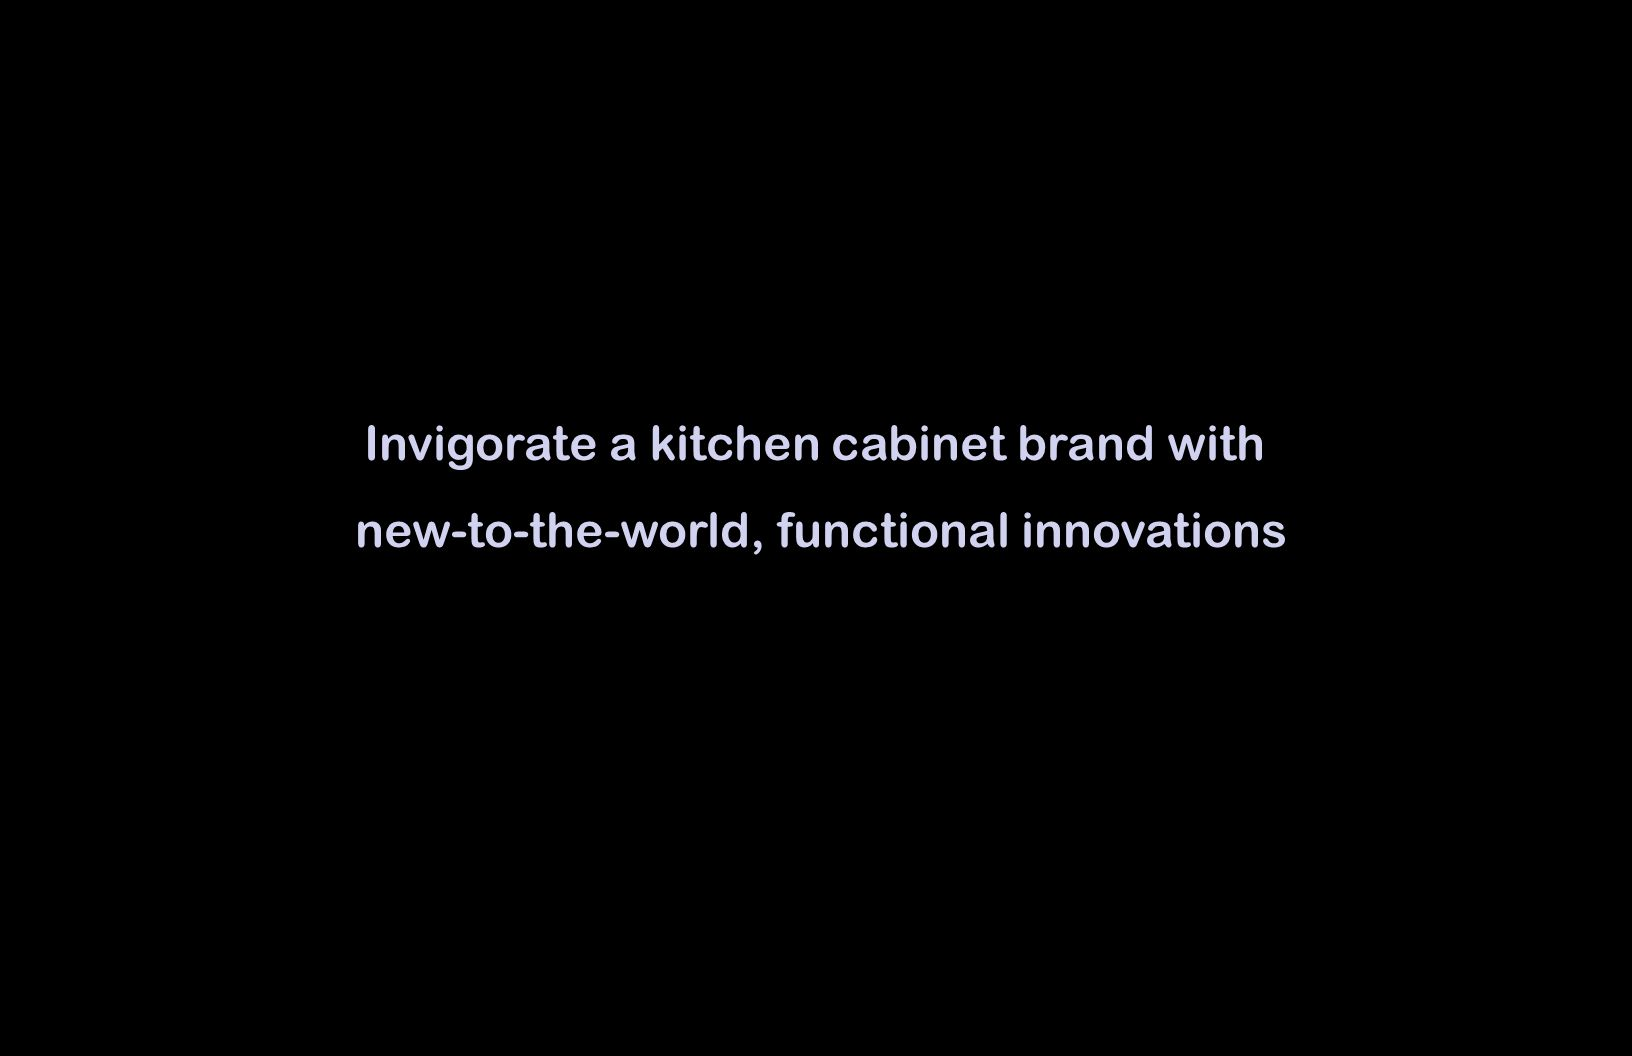 Invigorate a kitchen cabinet brand with new-to-the-world, functional innovations